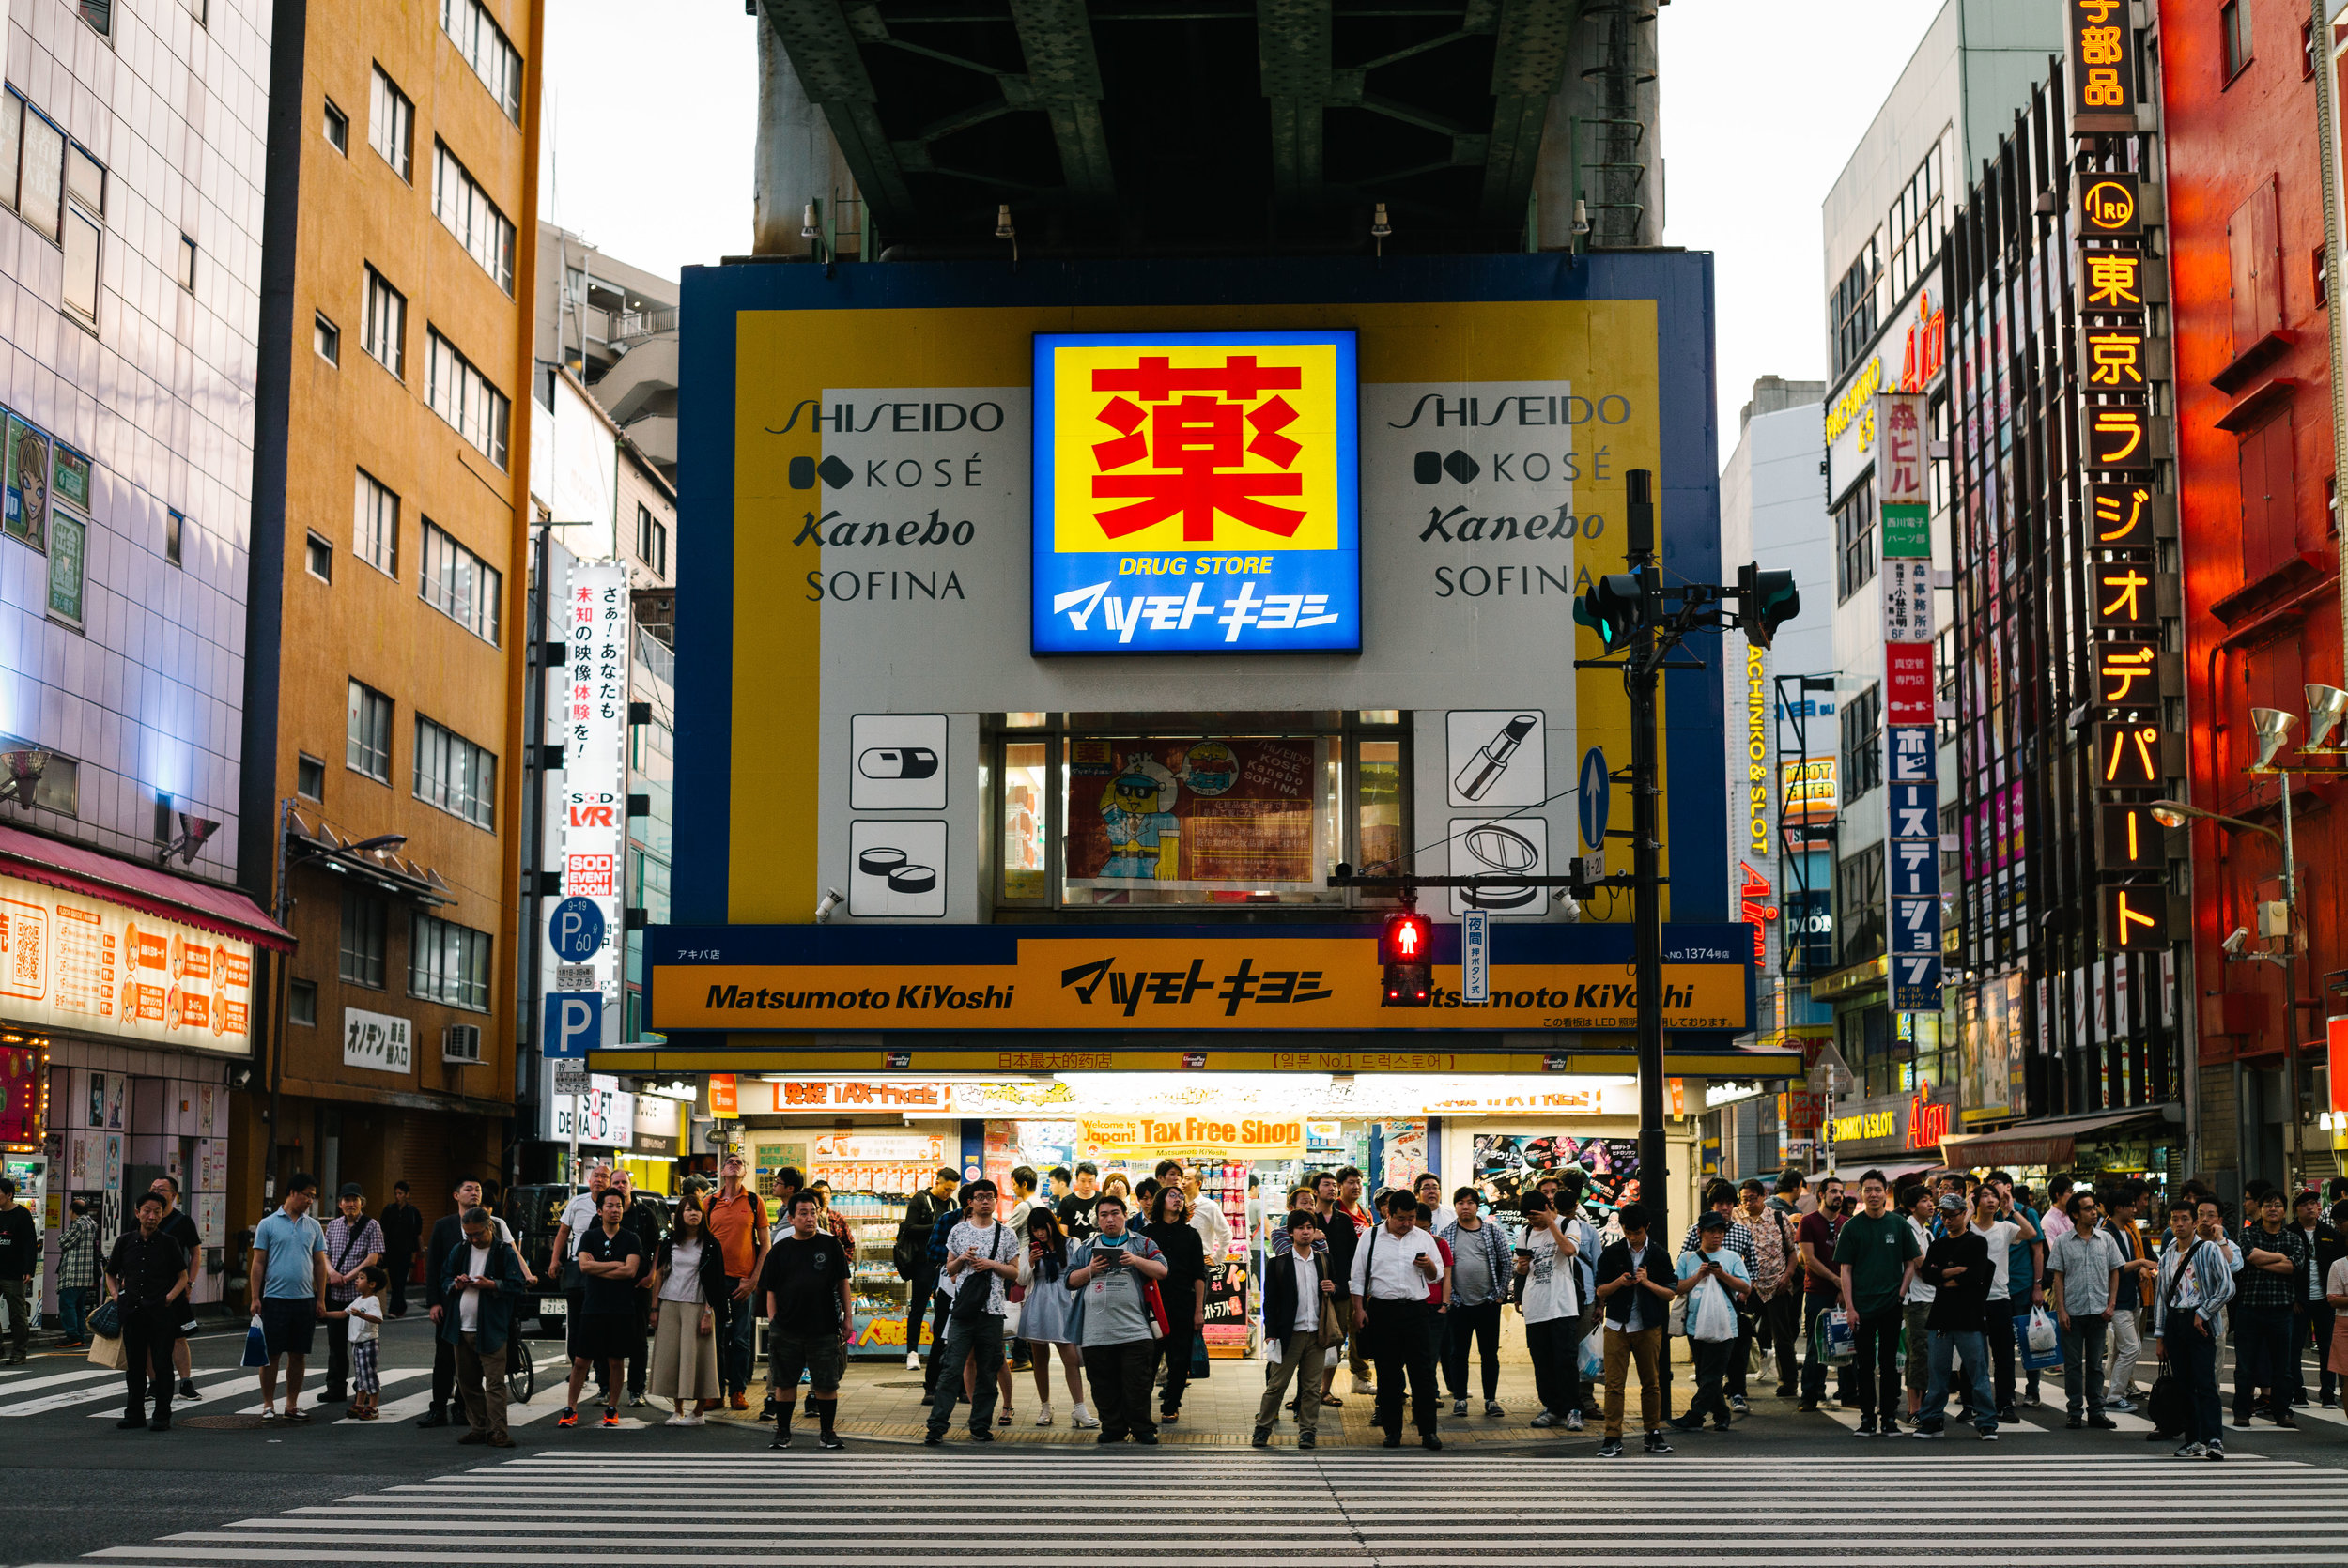 Akihabara is a major shopping district for electrical equipment and anime along with being home to many cutting-edge video game arcades. Tokyo. Japan. 2017.